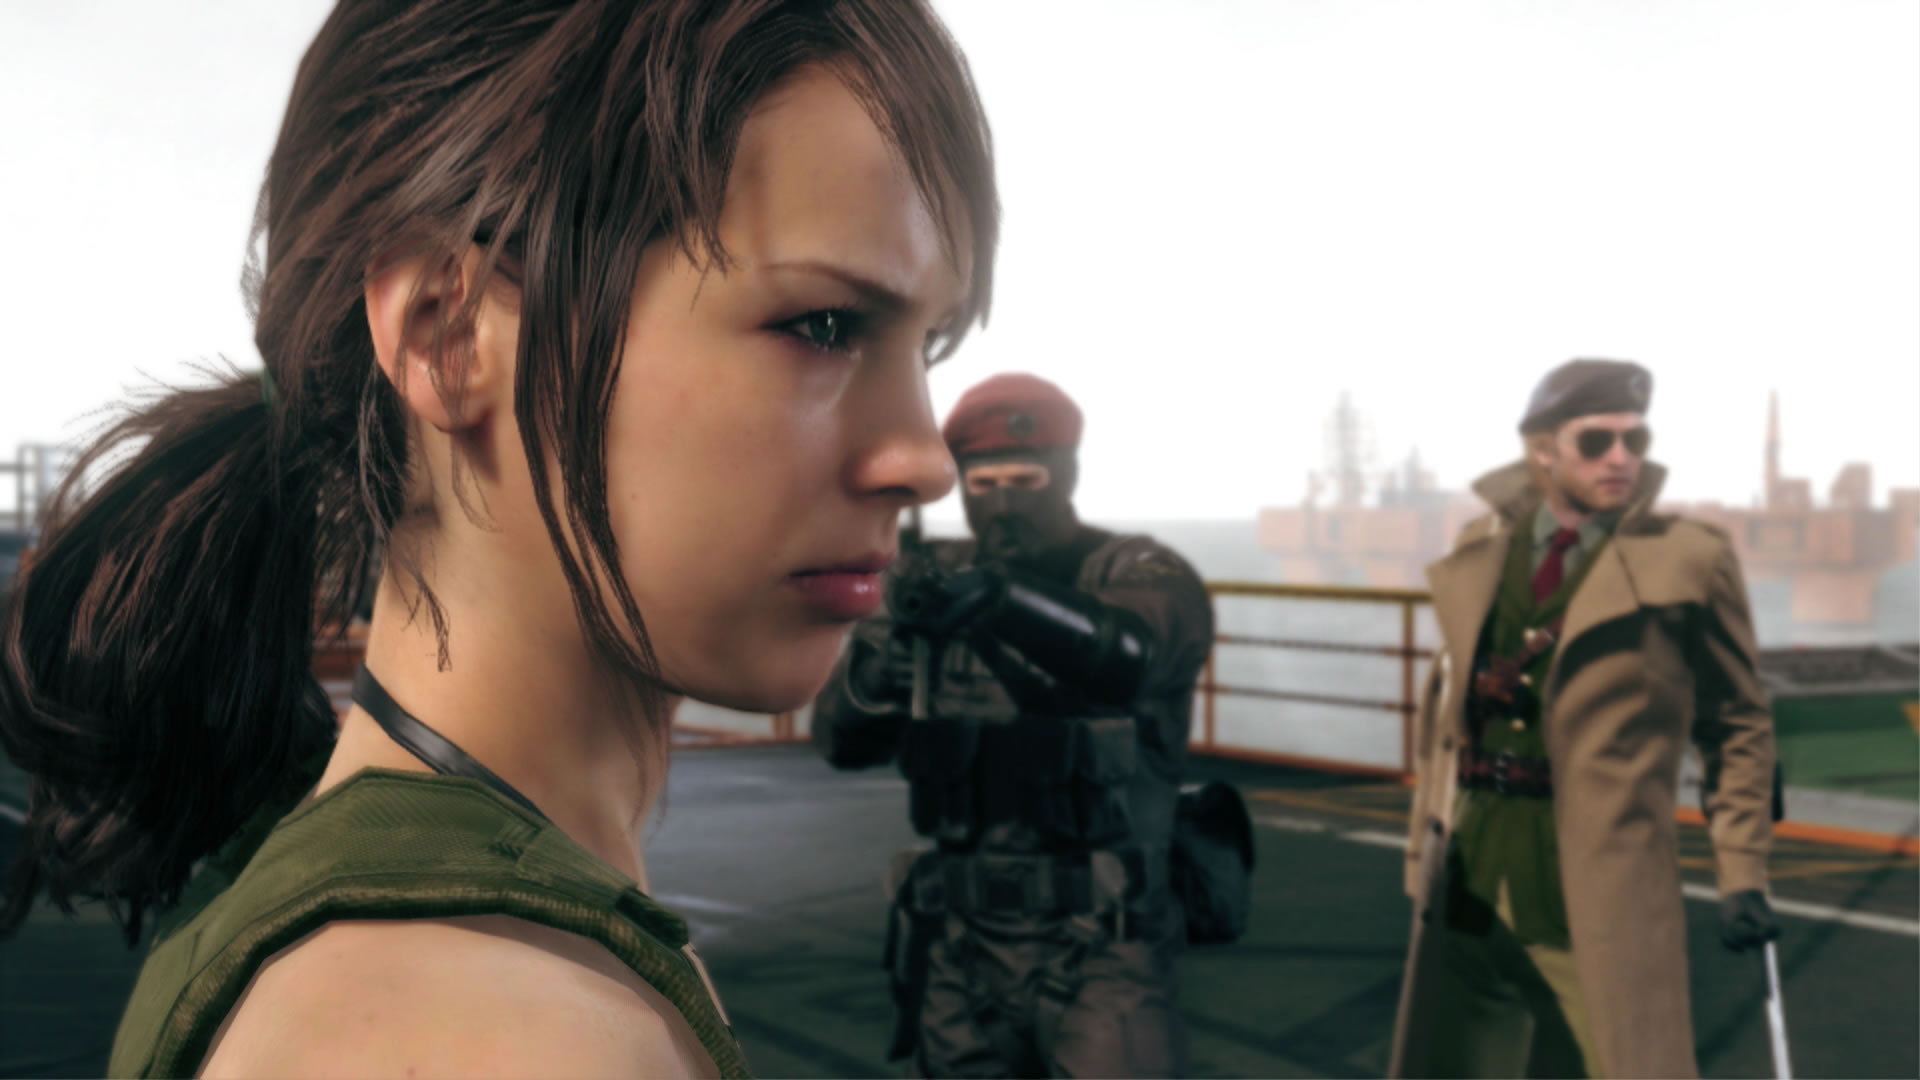 Metal Gear Solid V: The Phantom Pain high definition wallpapers